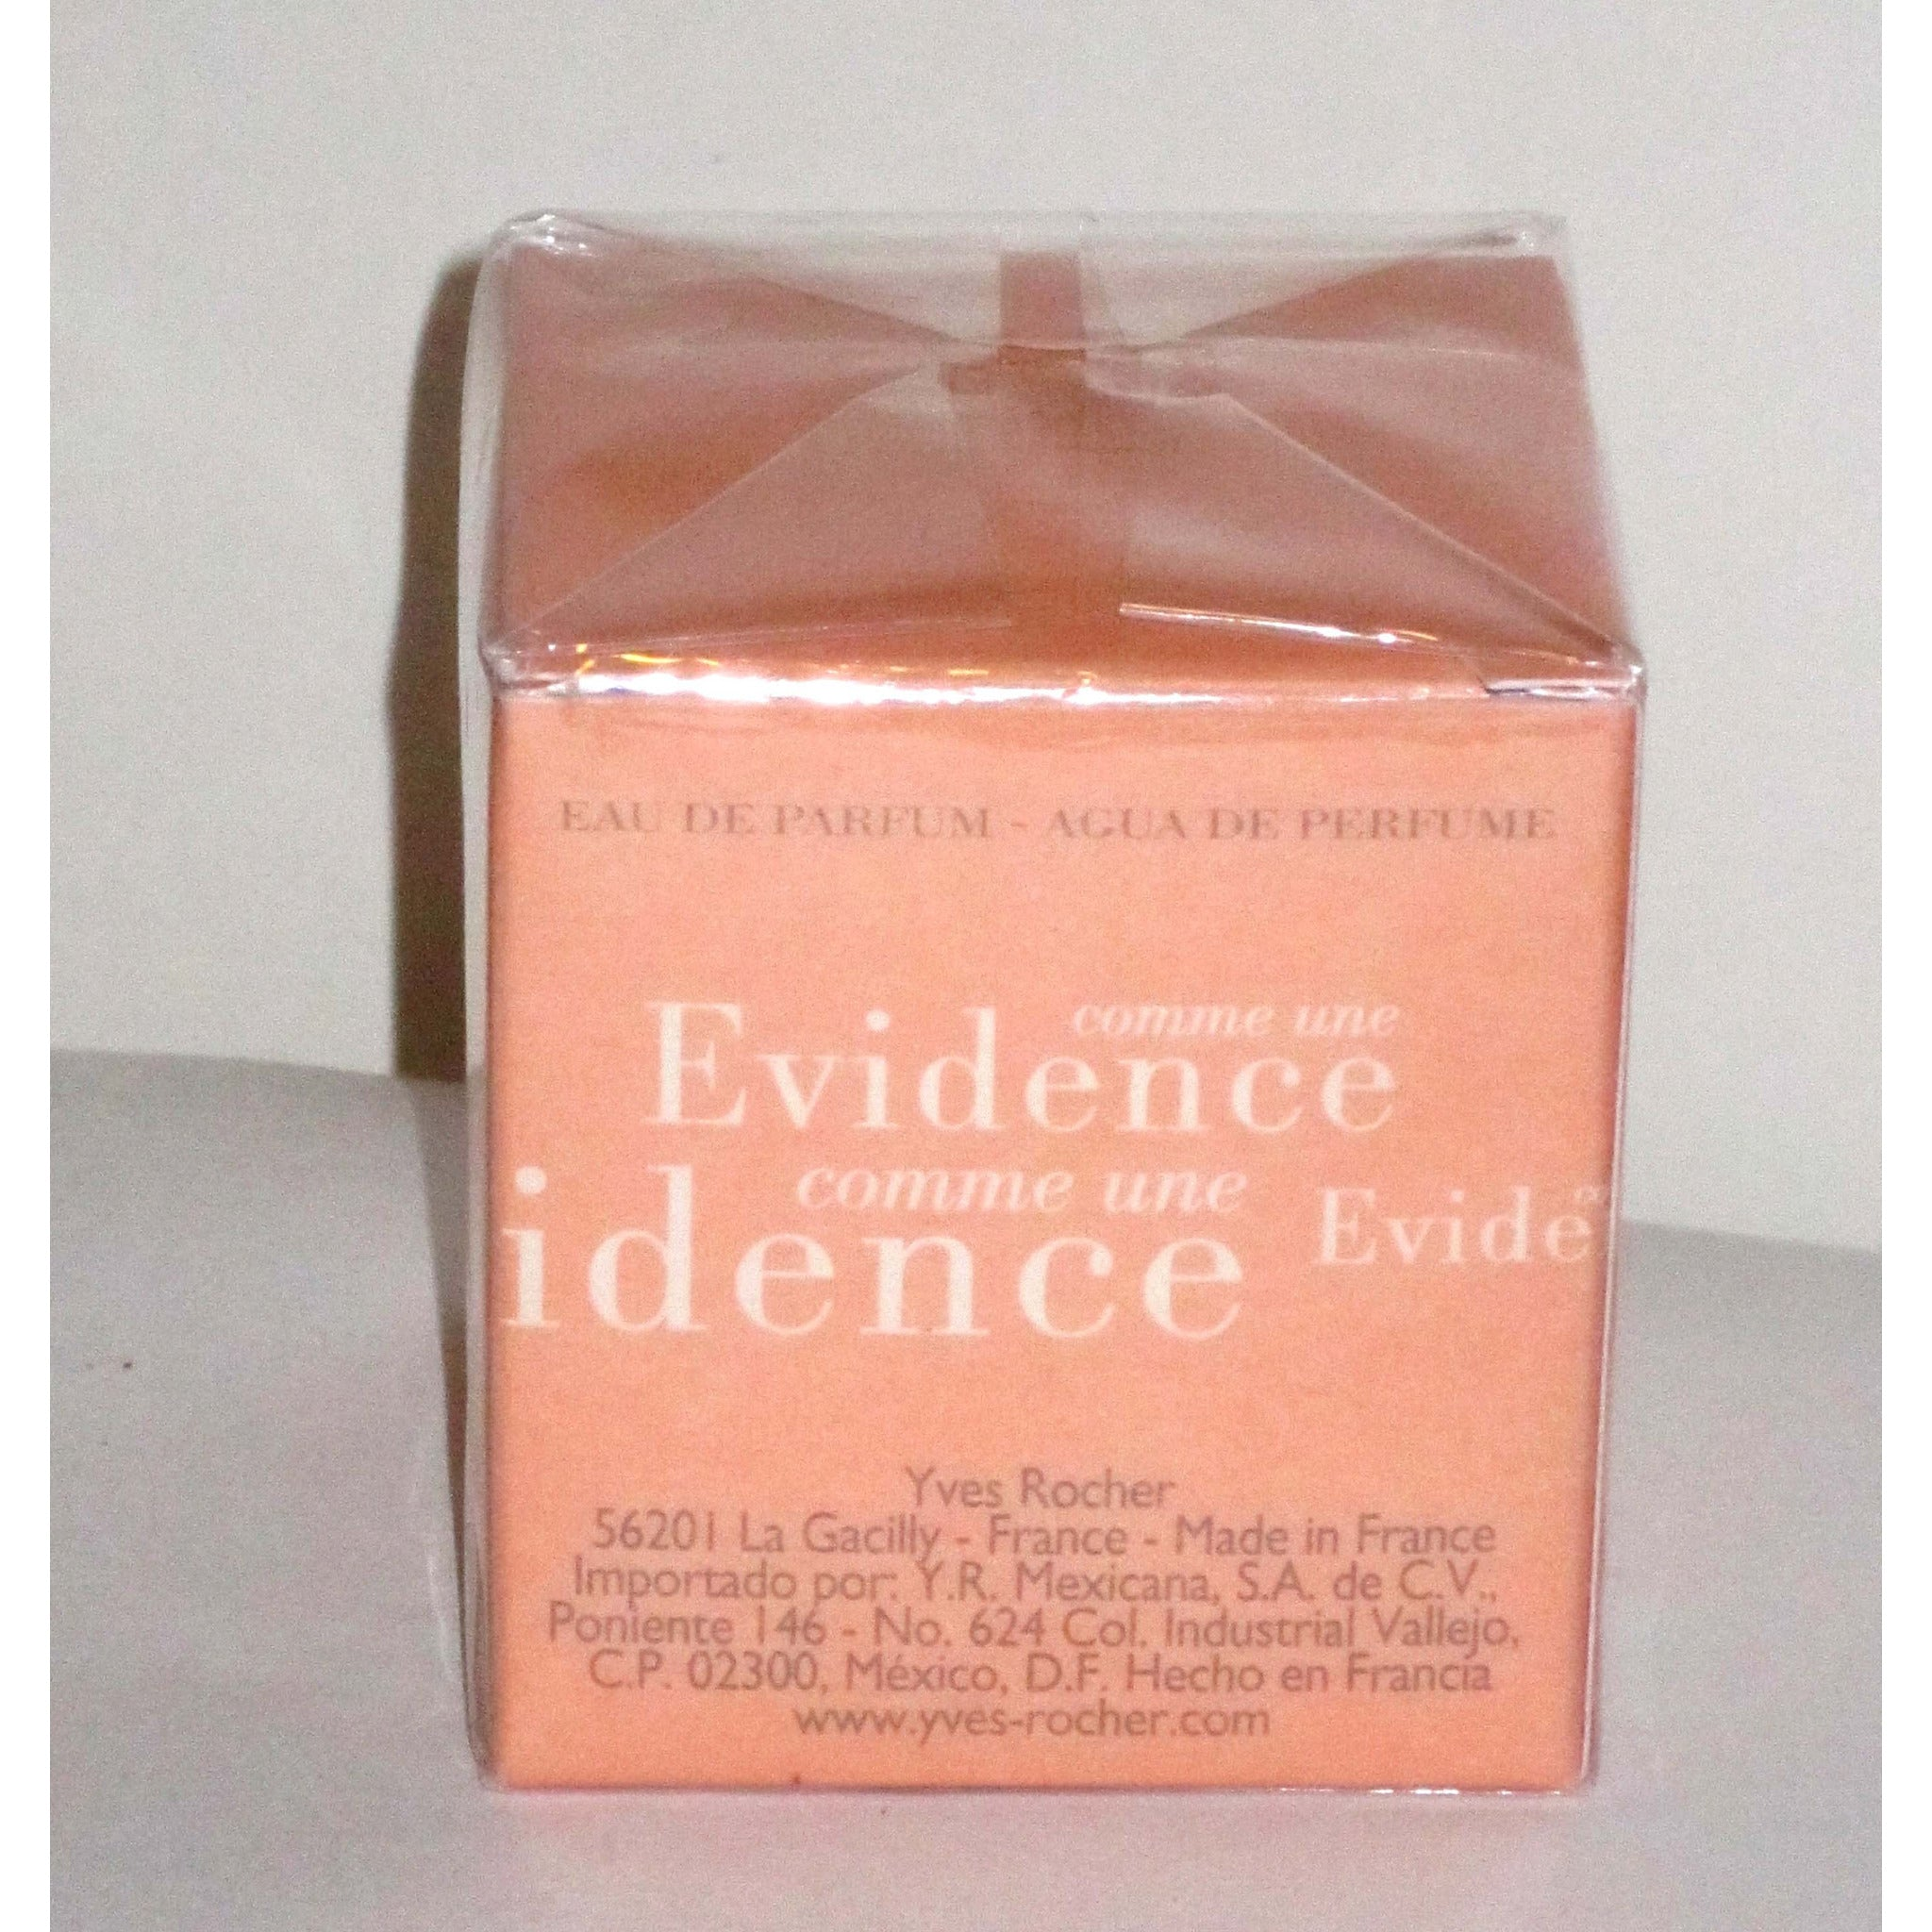 Vintage Yves Rocher Comme Une Evidence